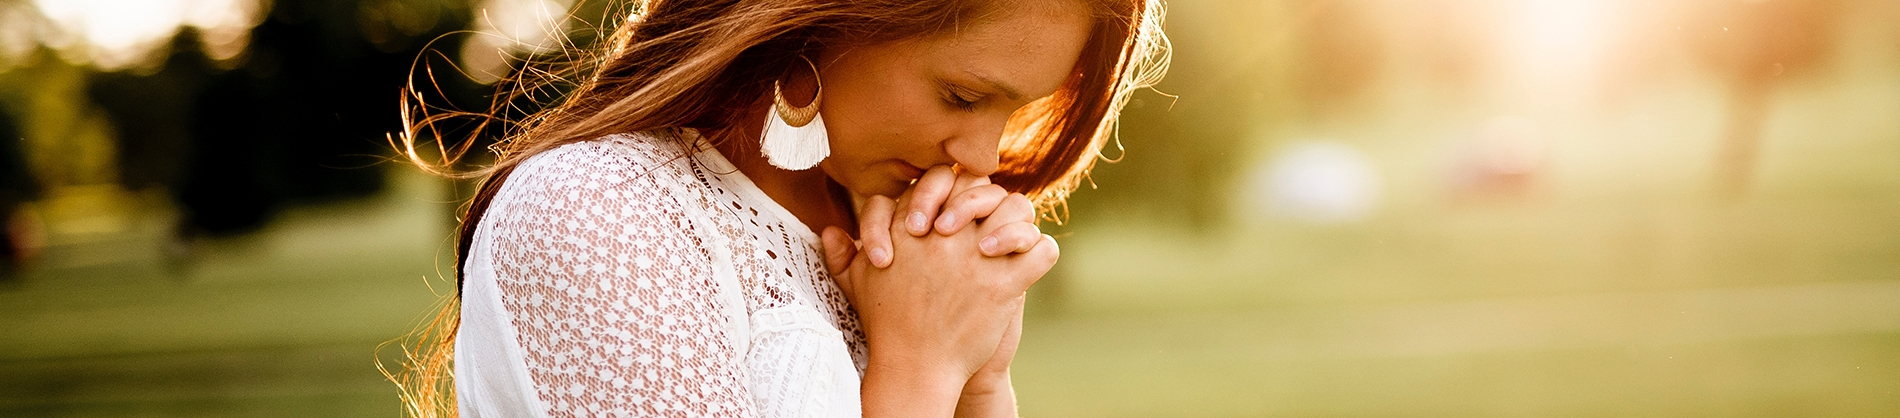 A women with her hands together praying